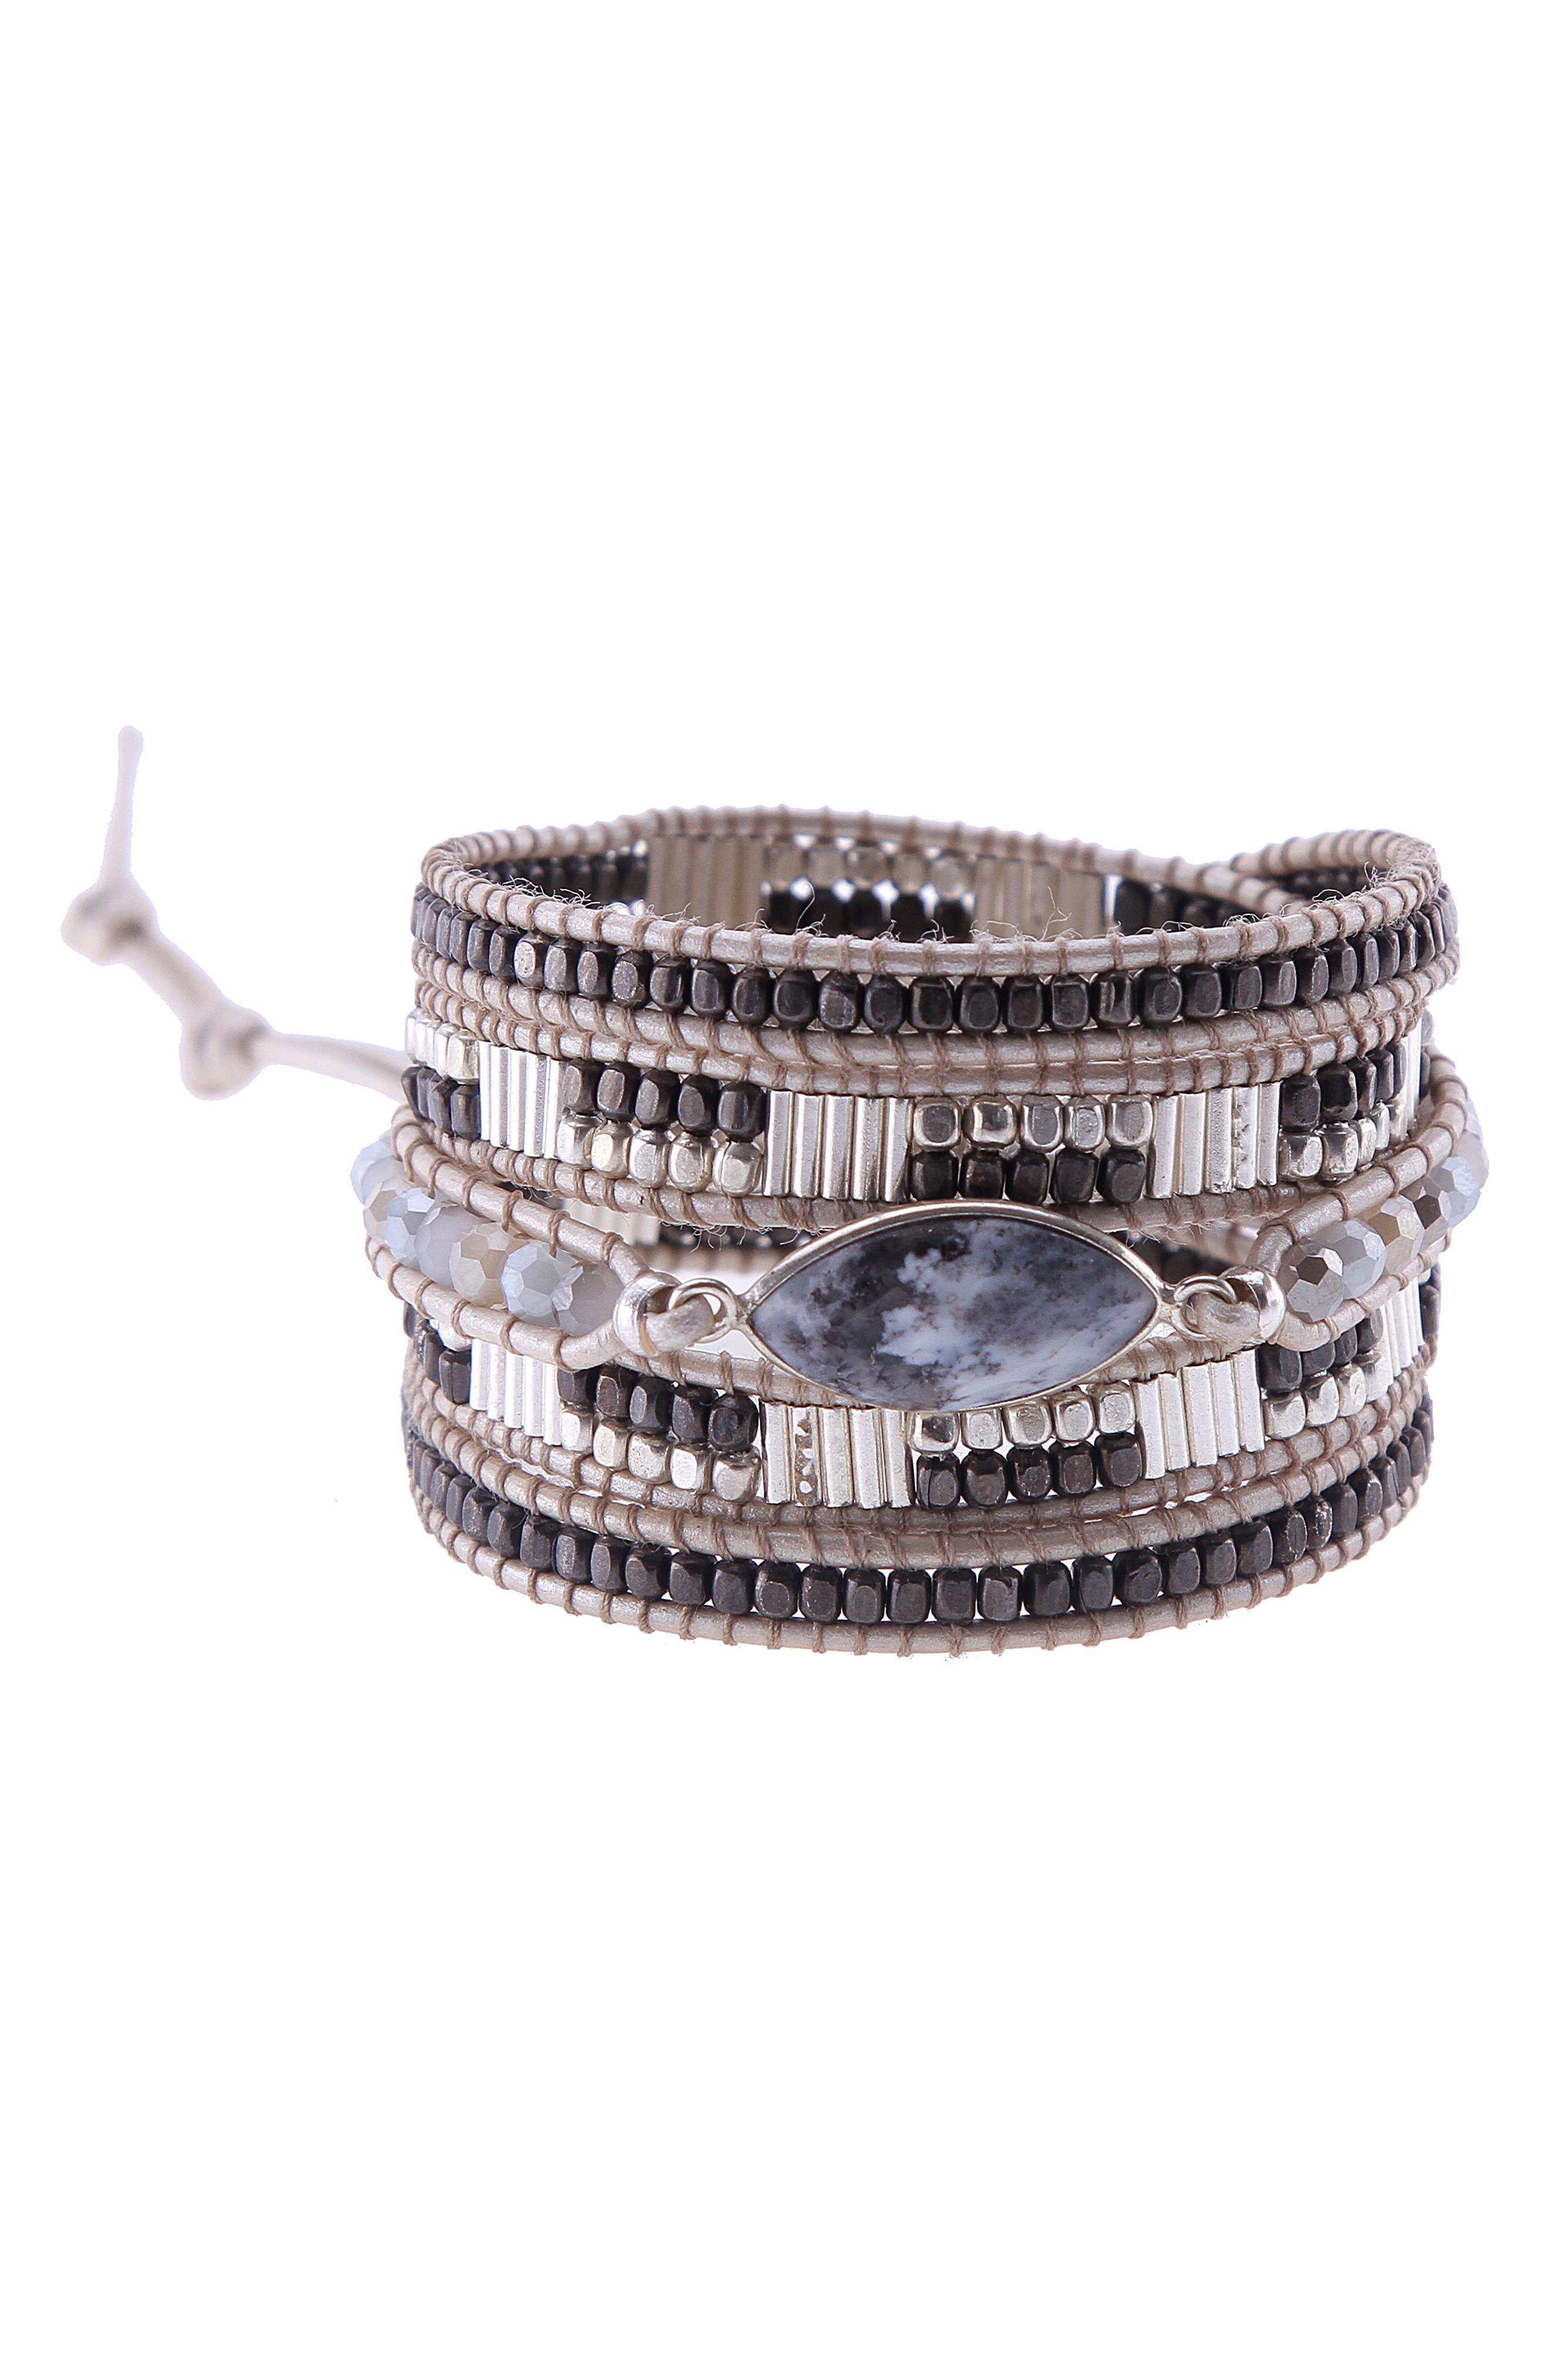 Beaded Agate Wrap Bracelet,                         Main,                         color, White